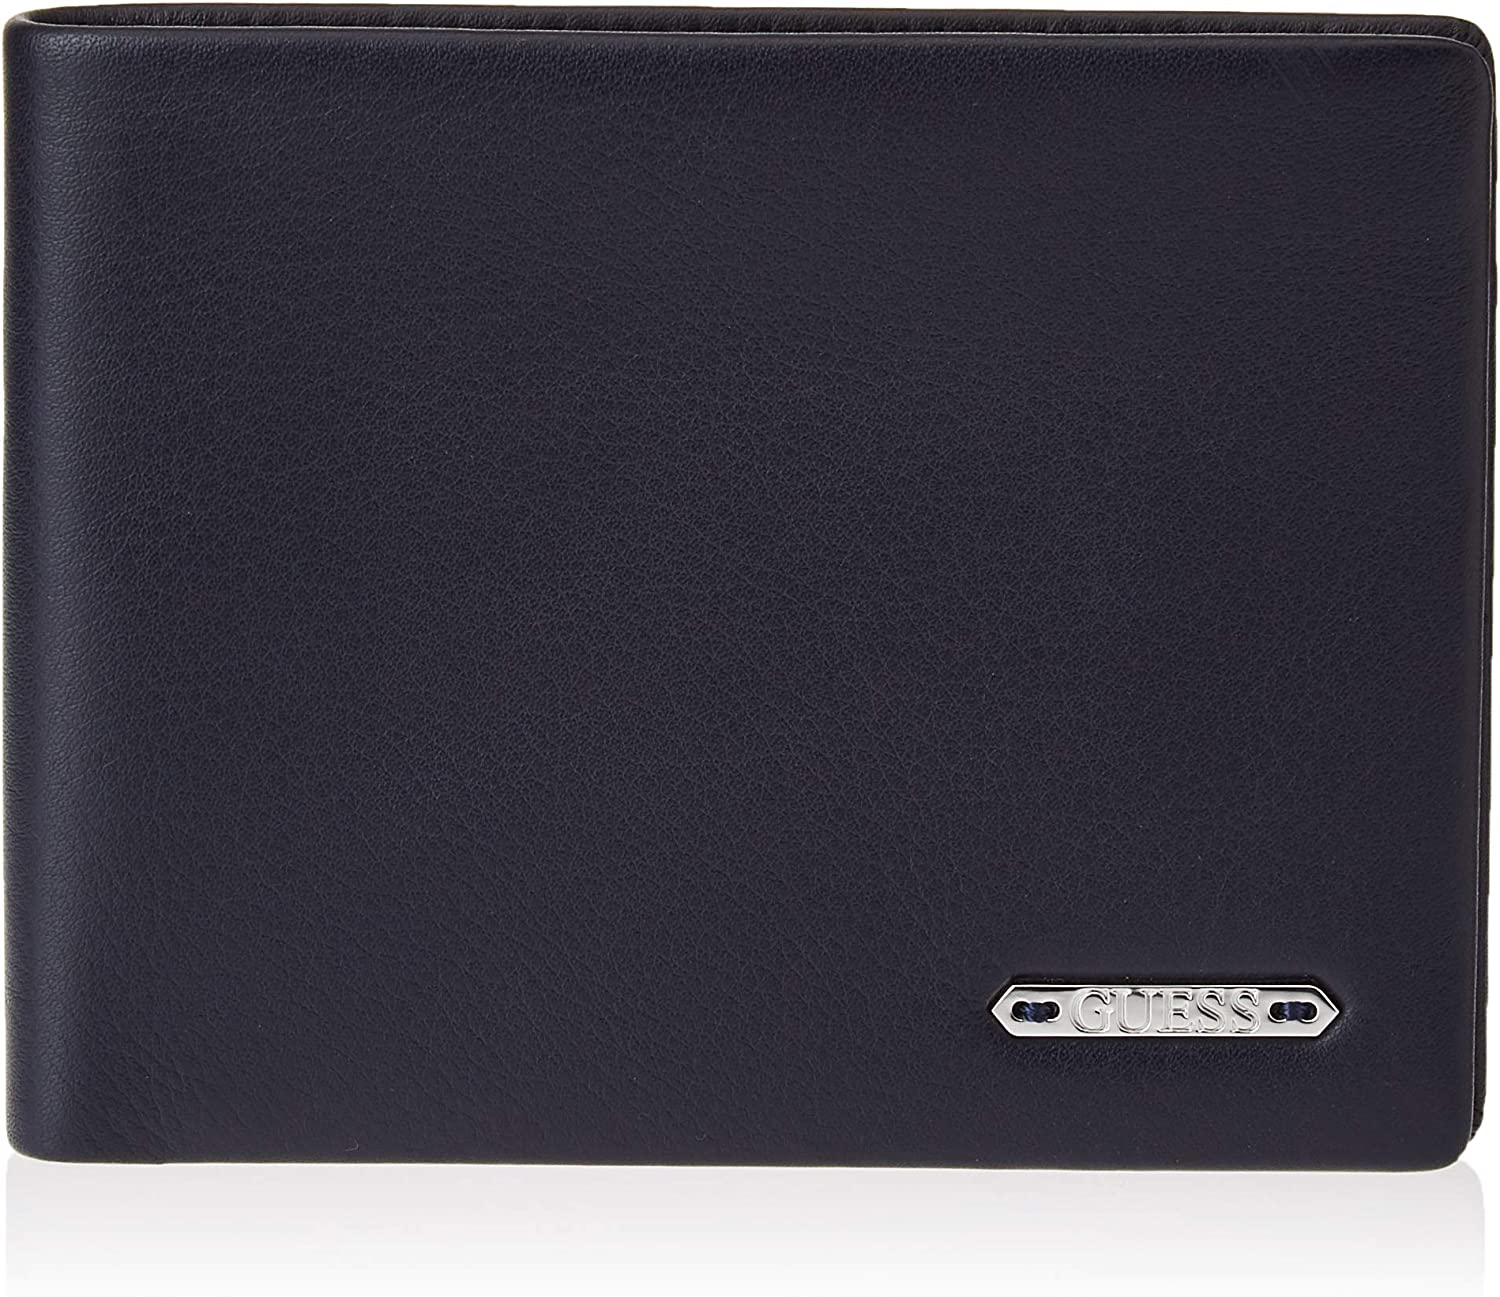 Guess Tyler Flat Billfold, Small Leather Goods para Hombre, Negro